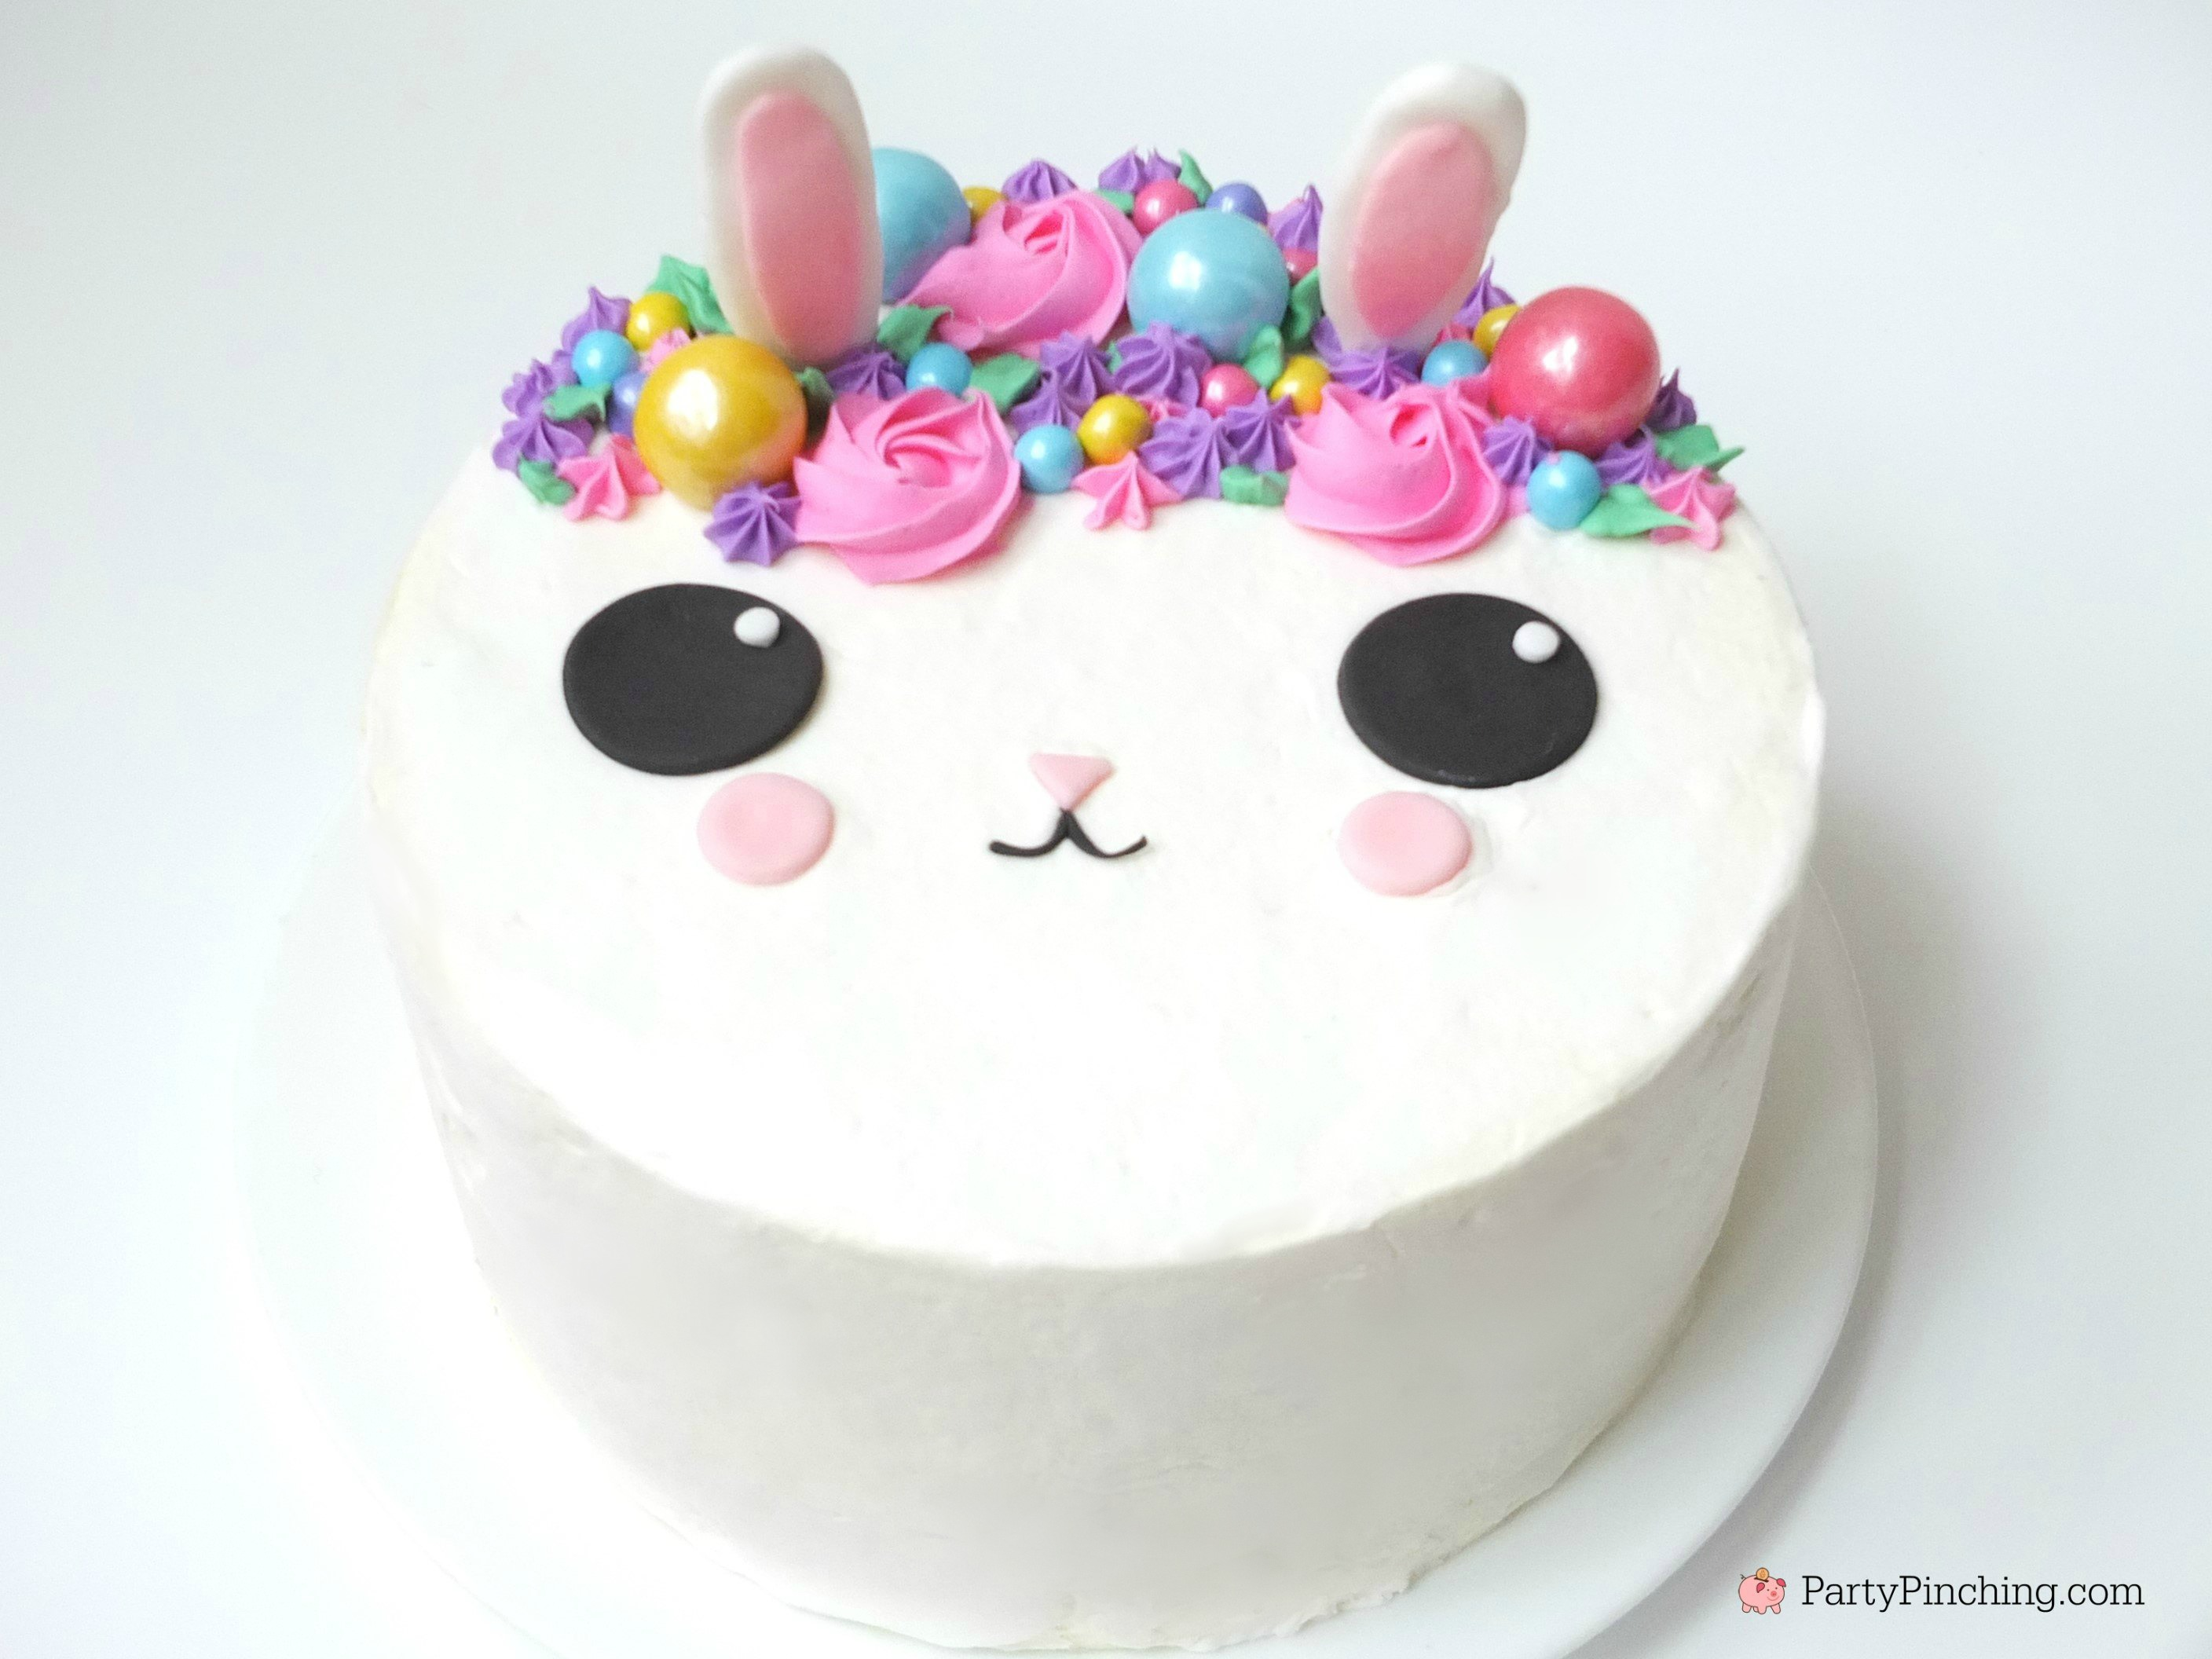 bunny cake, bunny cake with flower crown, cute kawaii bunny cake, fun easy bunny cake for Easter, sweet treats for kids, adorable rabbit cake, bunny cake with floral buttercream fondant, oreo bunny cookies, candy coated easter bunny cookies flower crown